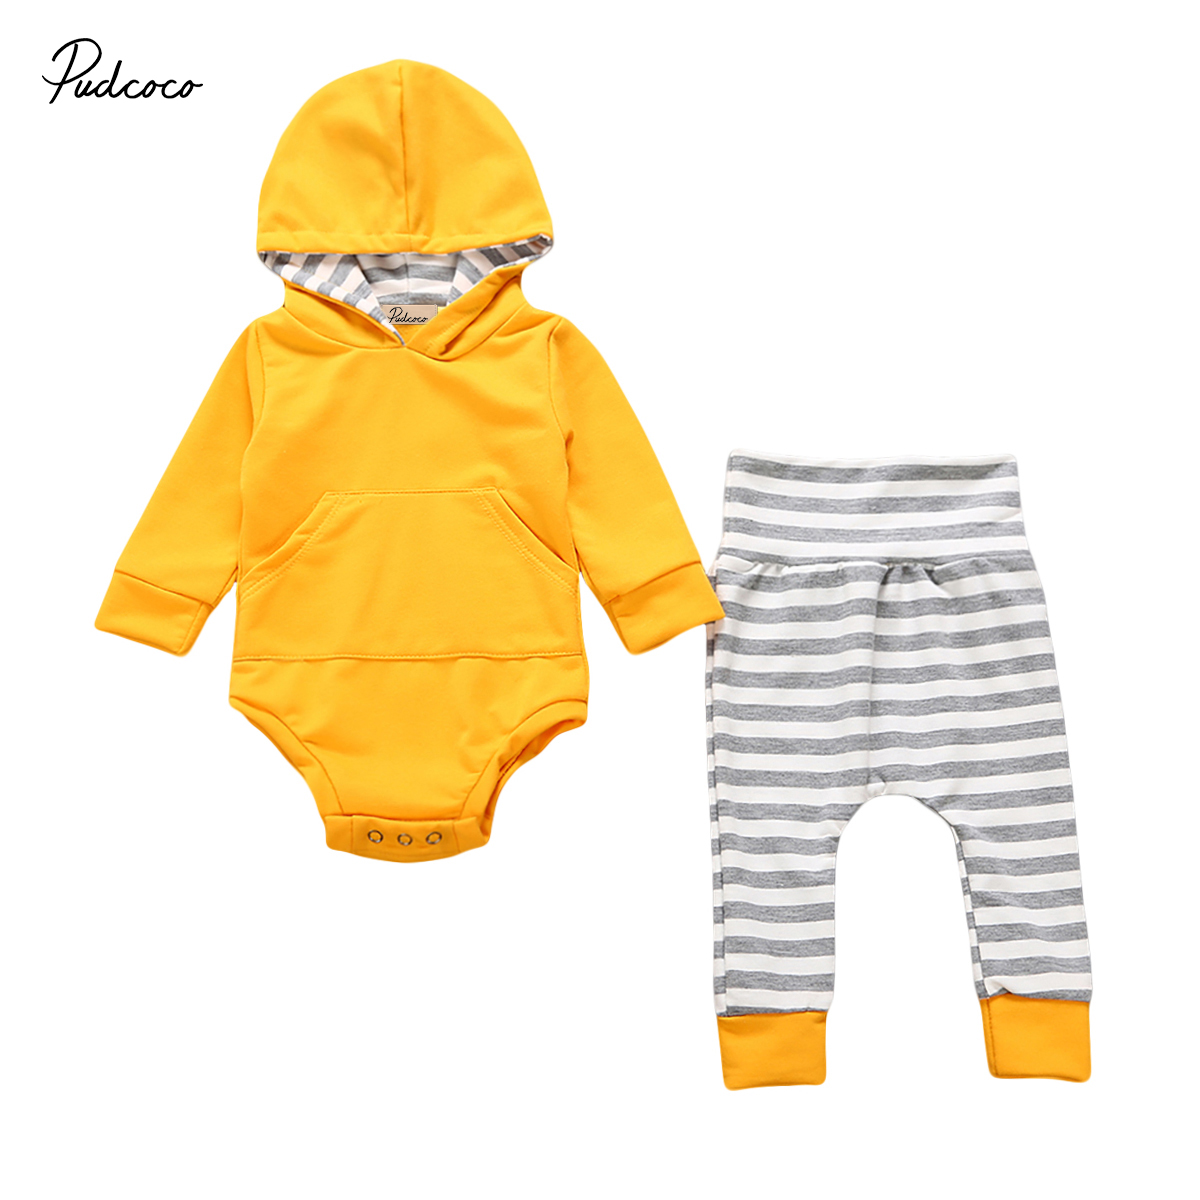 2017 Brand New 2pcs Infant Toddler Newborn Baby Boy Girl Hooded Sweater Long Sleeve Tops Pants 2Pcs Outfits Set Autumn Clothes toddler summer suit 2016 wholesale newborn infant kids baby boy striped clothes short sleeve tops long pants outfits set 2 8t